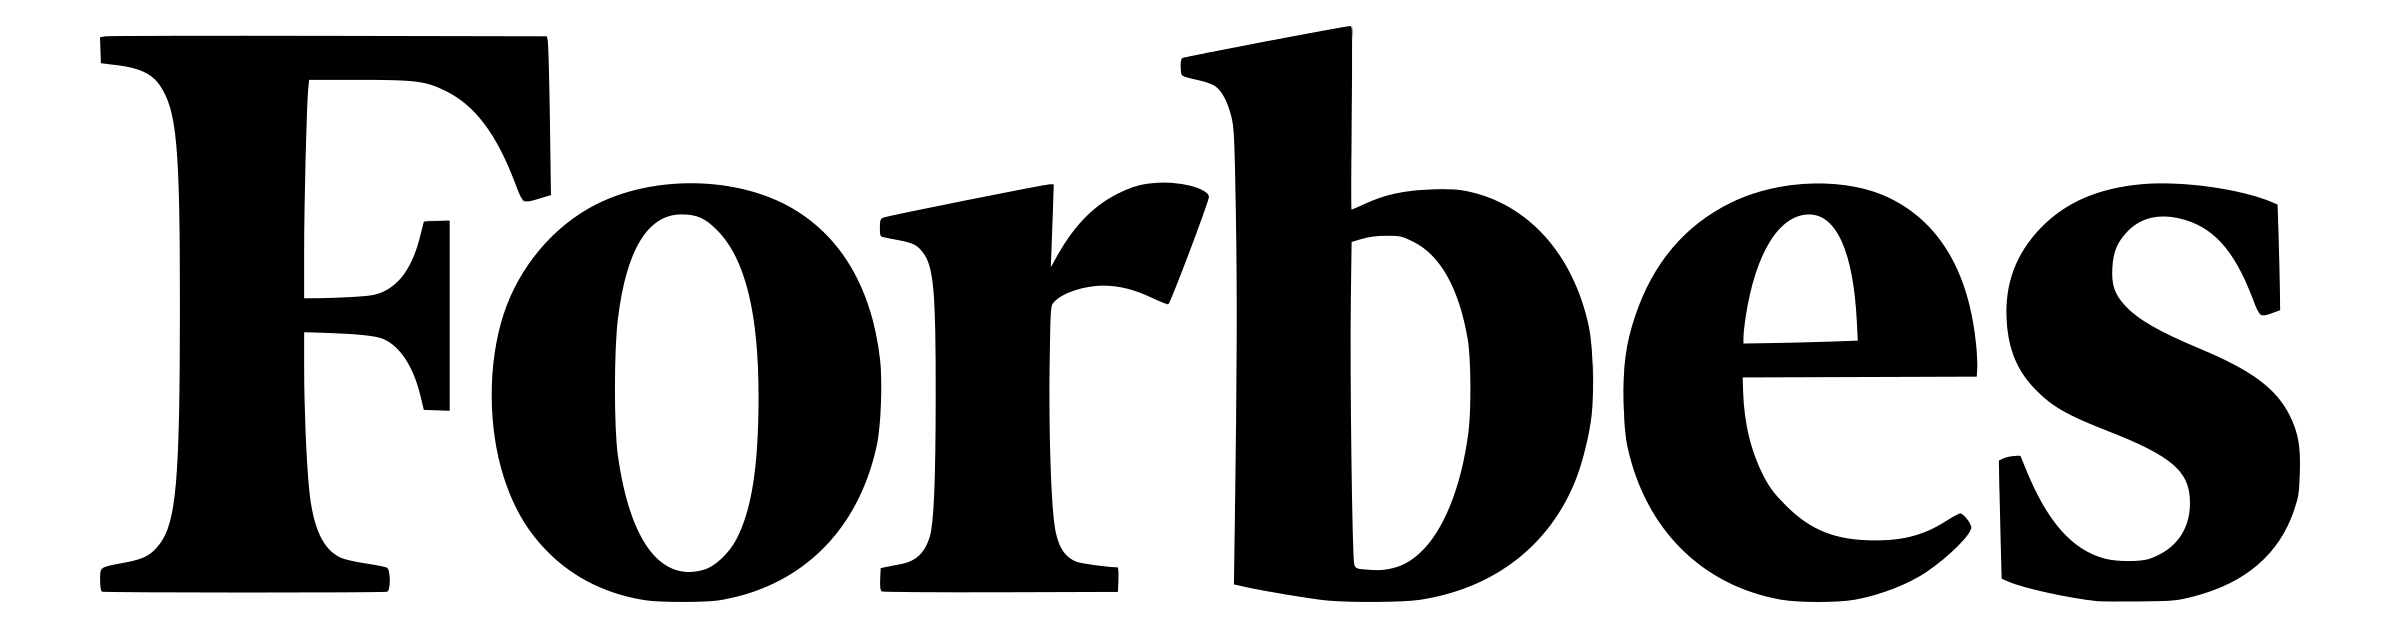 forbes-logo-black-transparent